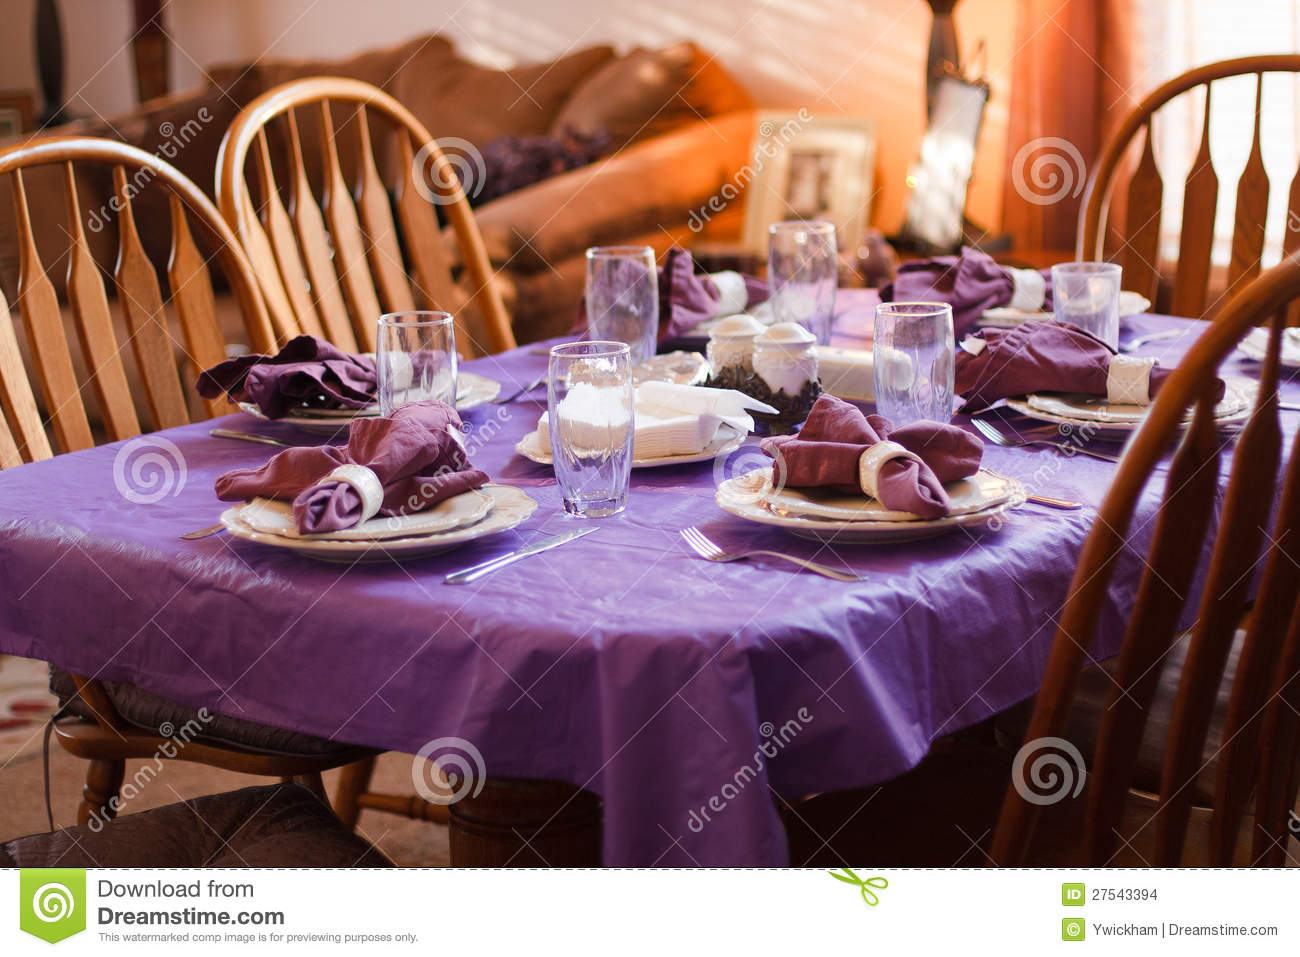 Download Dinner table place setting stock photo. Image of white - 27543394